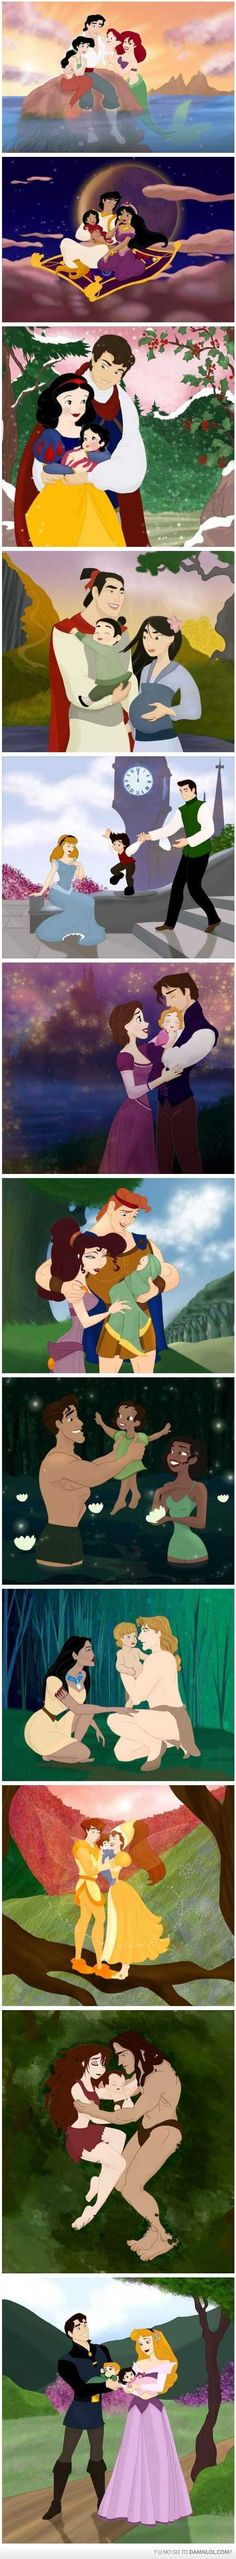 Disney families (except for Thumbelina; that's Don Bluth)